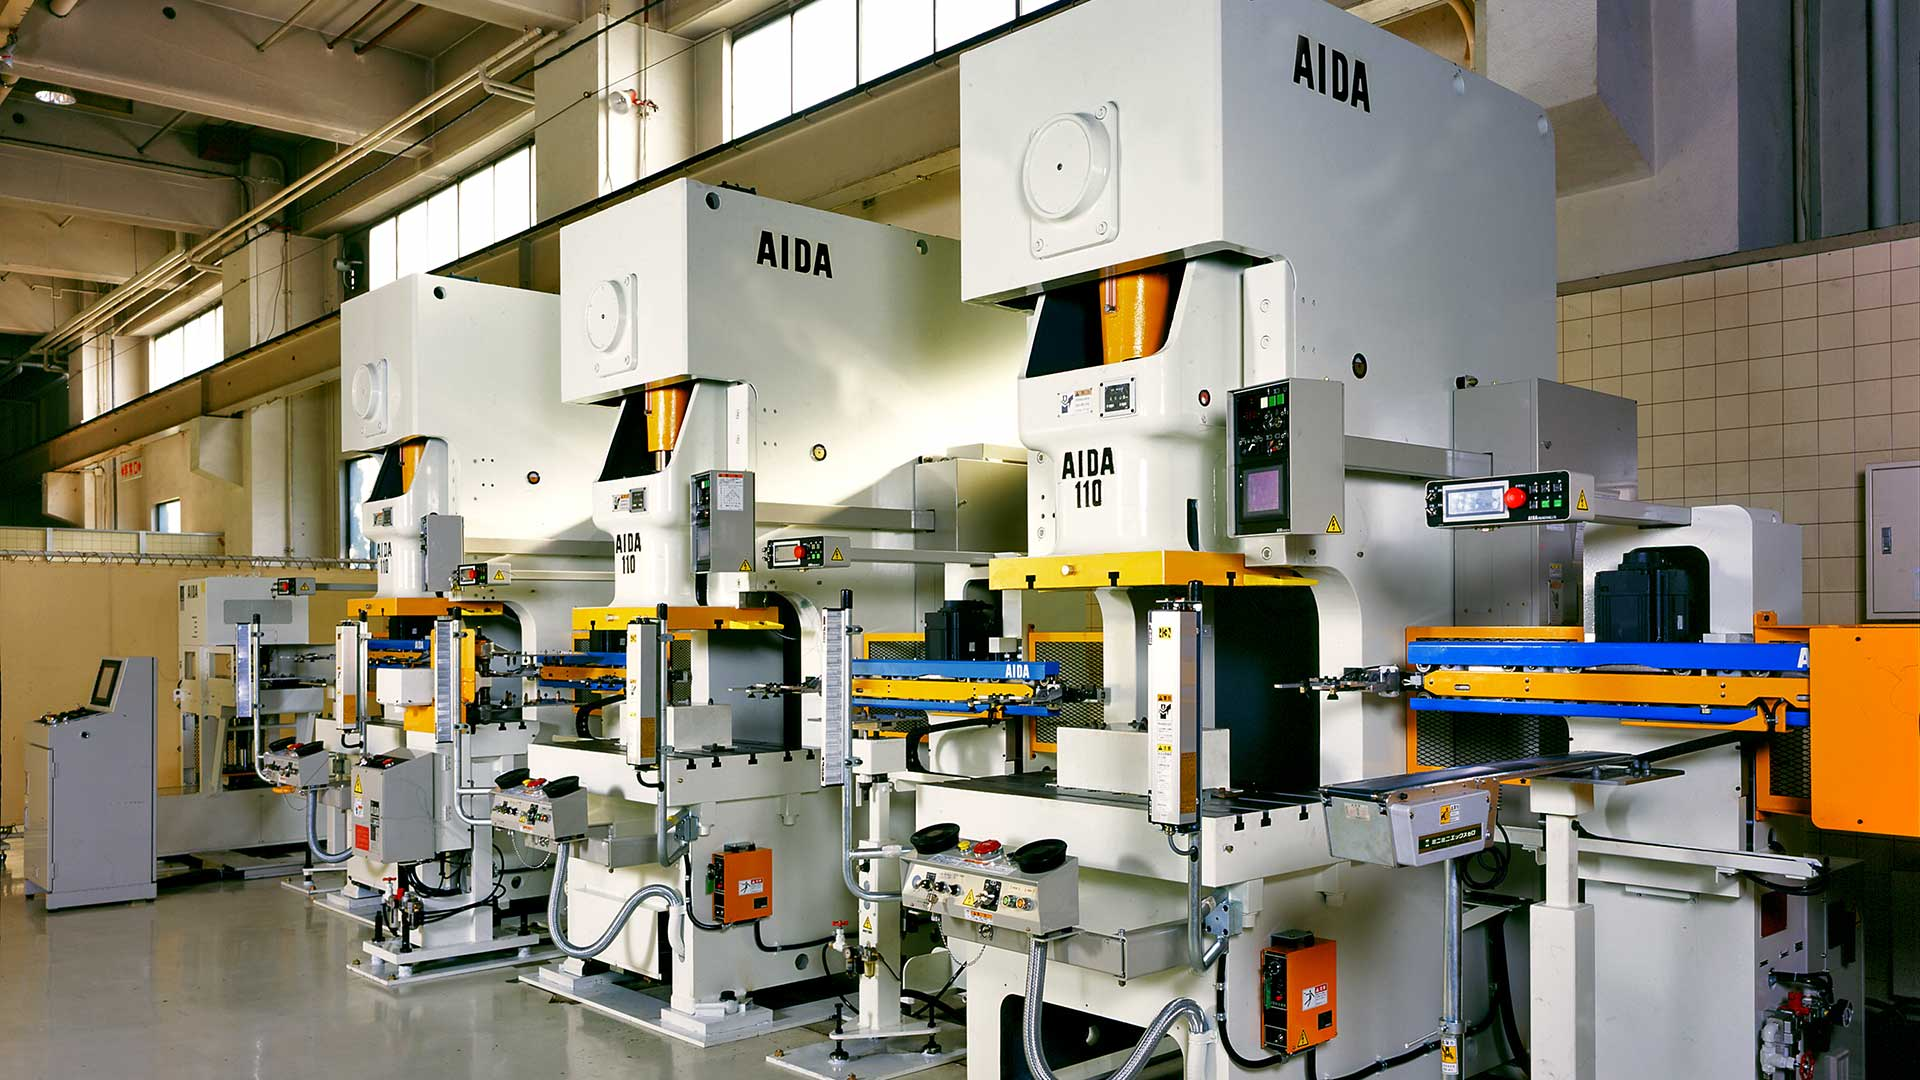 NC1-1100, 110 Ton Gap Press Tandem Line with AIDA A-8II Transfer Robots